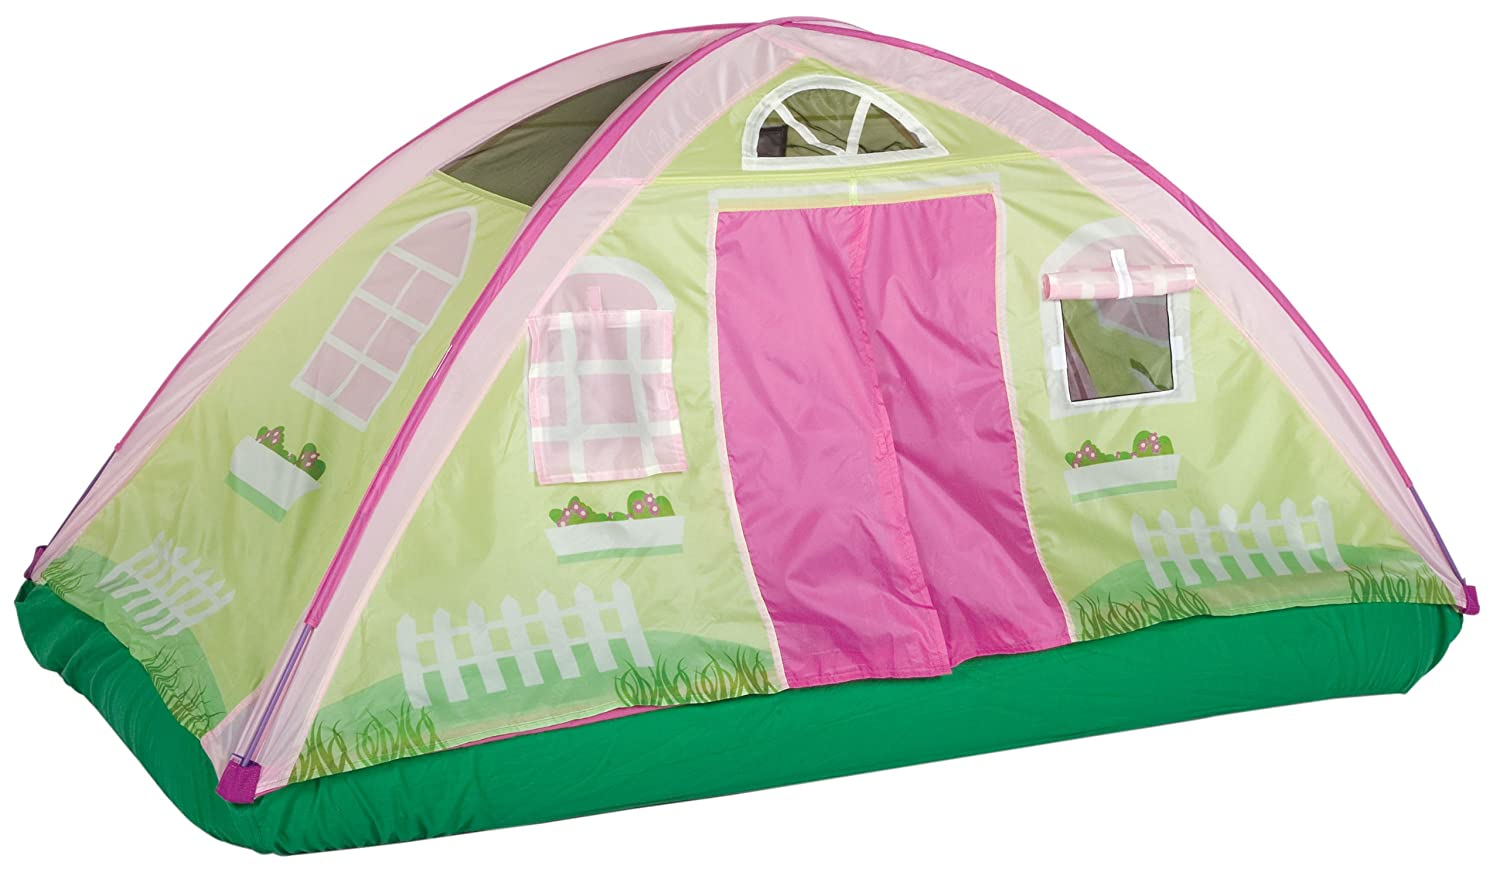 Pacific play tents cottage bed tent twin 19600 new for Tent cottage